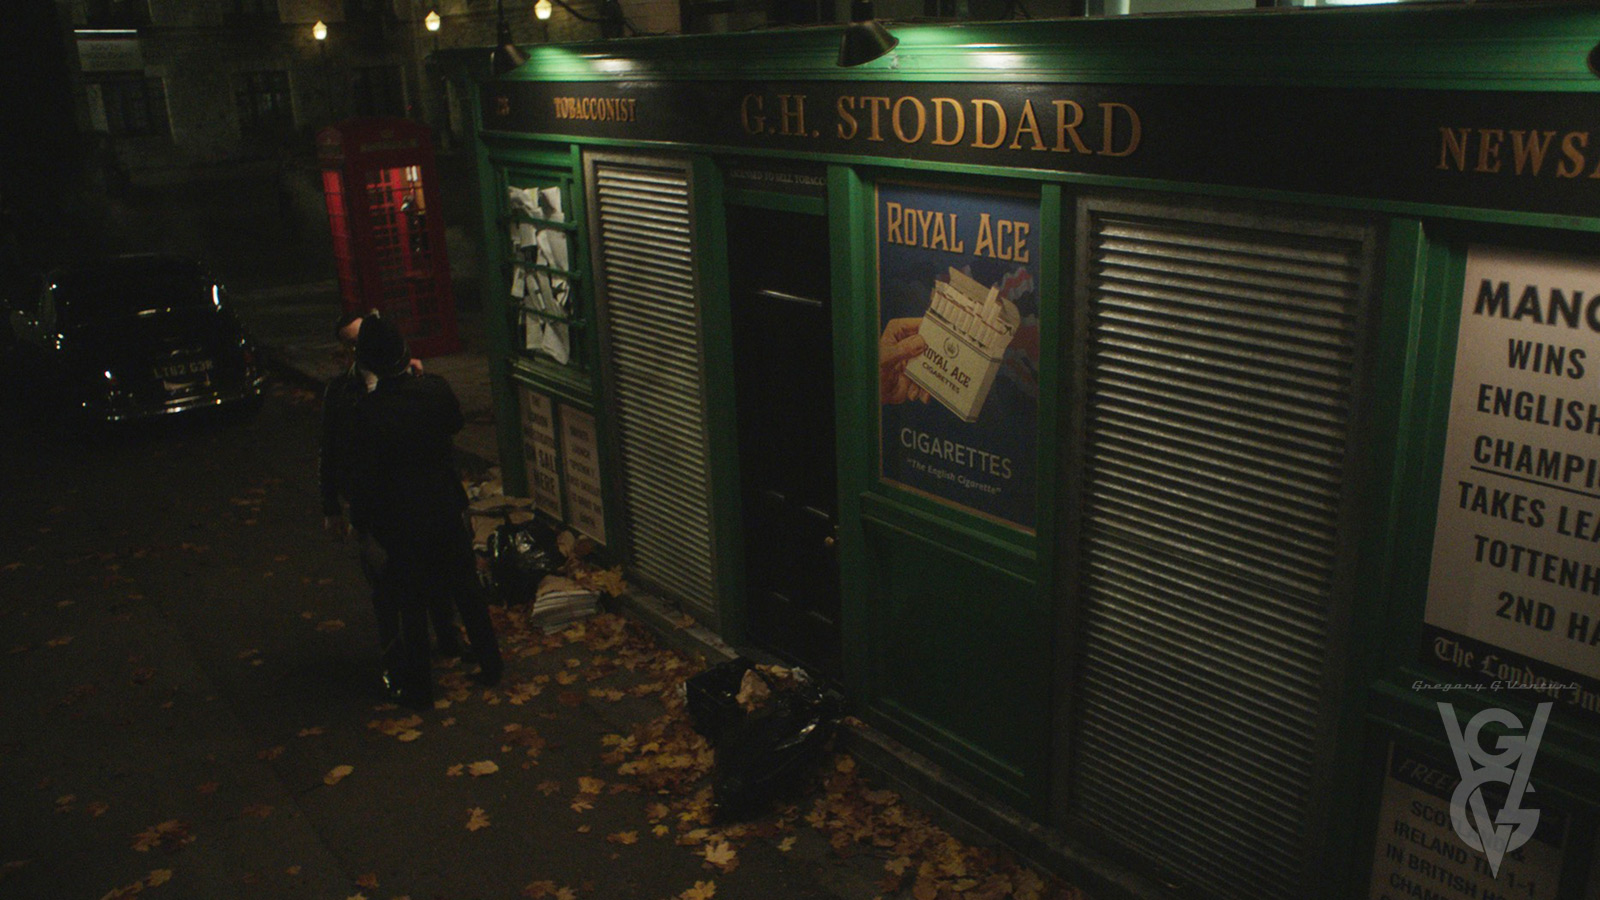 CHARMED: S1 - LONDON NEWSSTAND - DRESSED LOCATION - SCREEN STILL